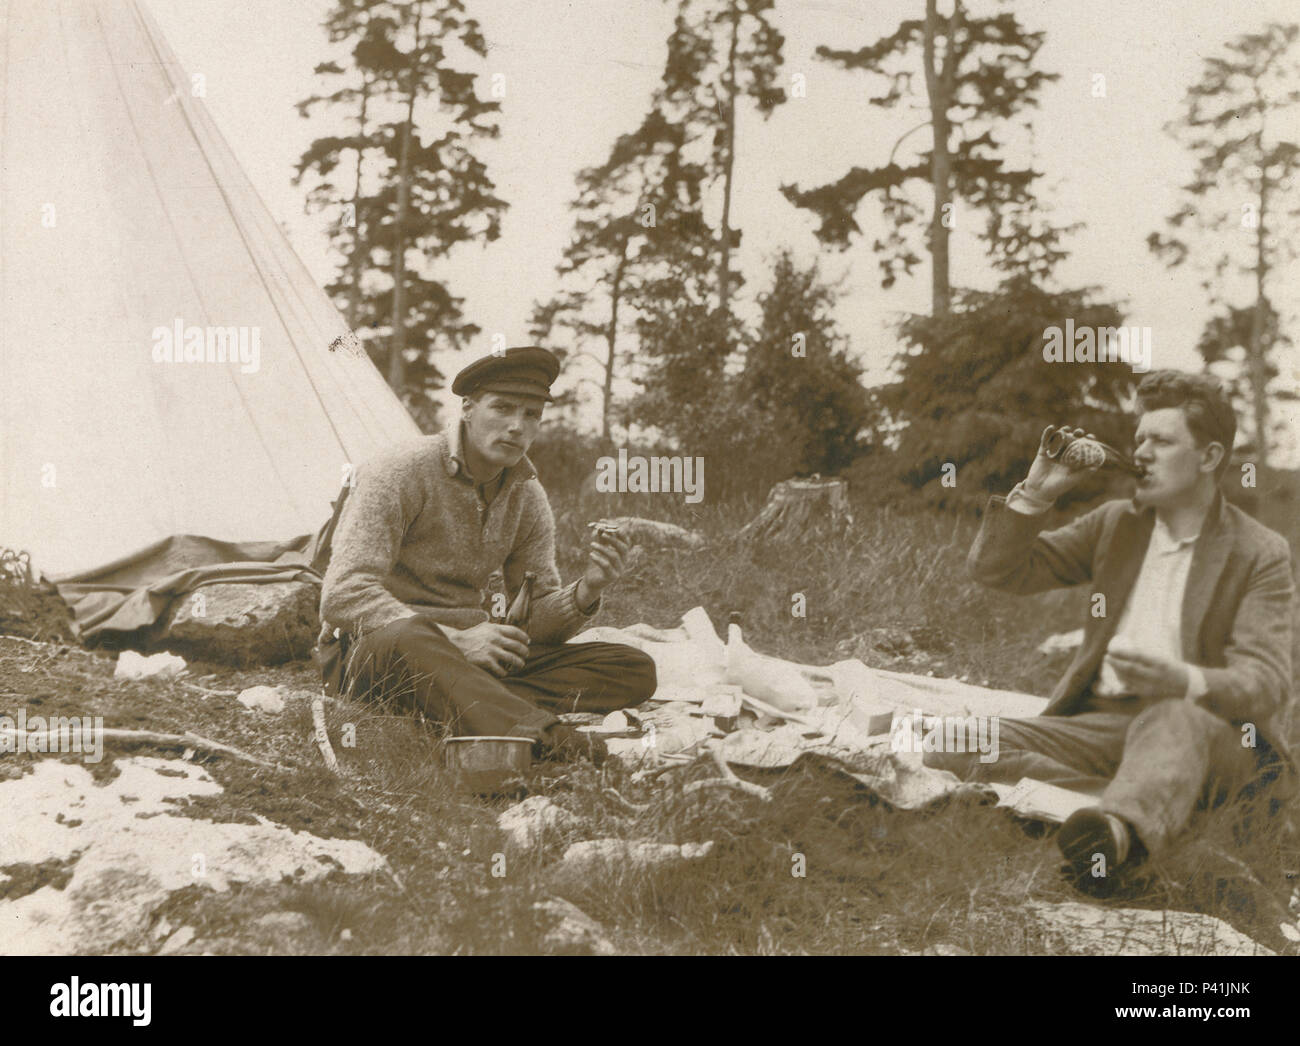 Antique c1910 photograph, two men on a picnic outdoors. SOURCE: ORIGINAL PHOTOGRAPH - Stock Image